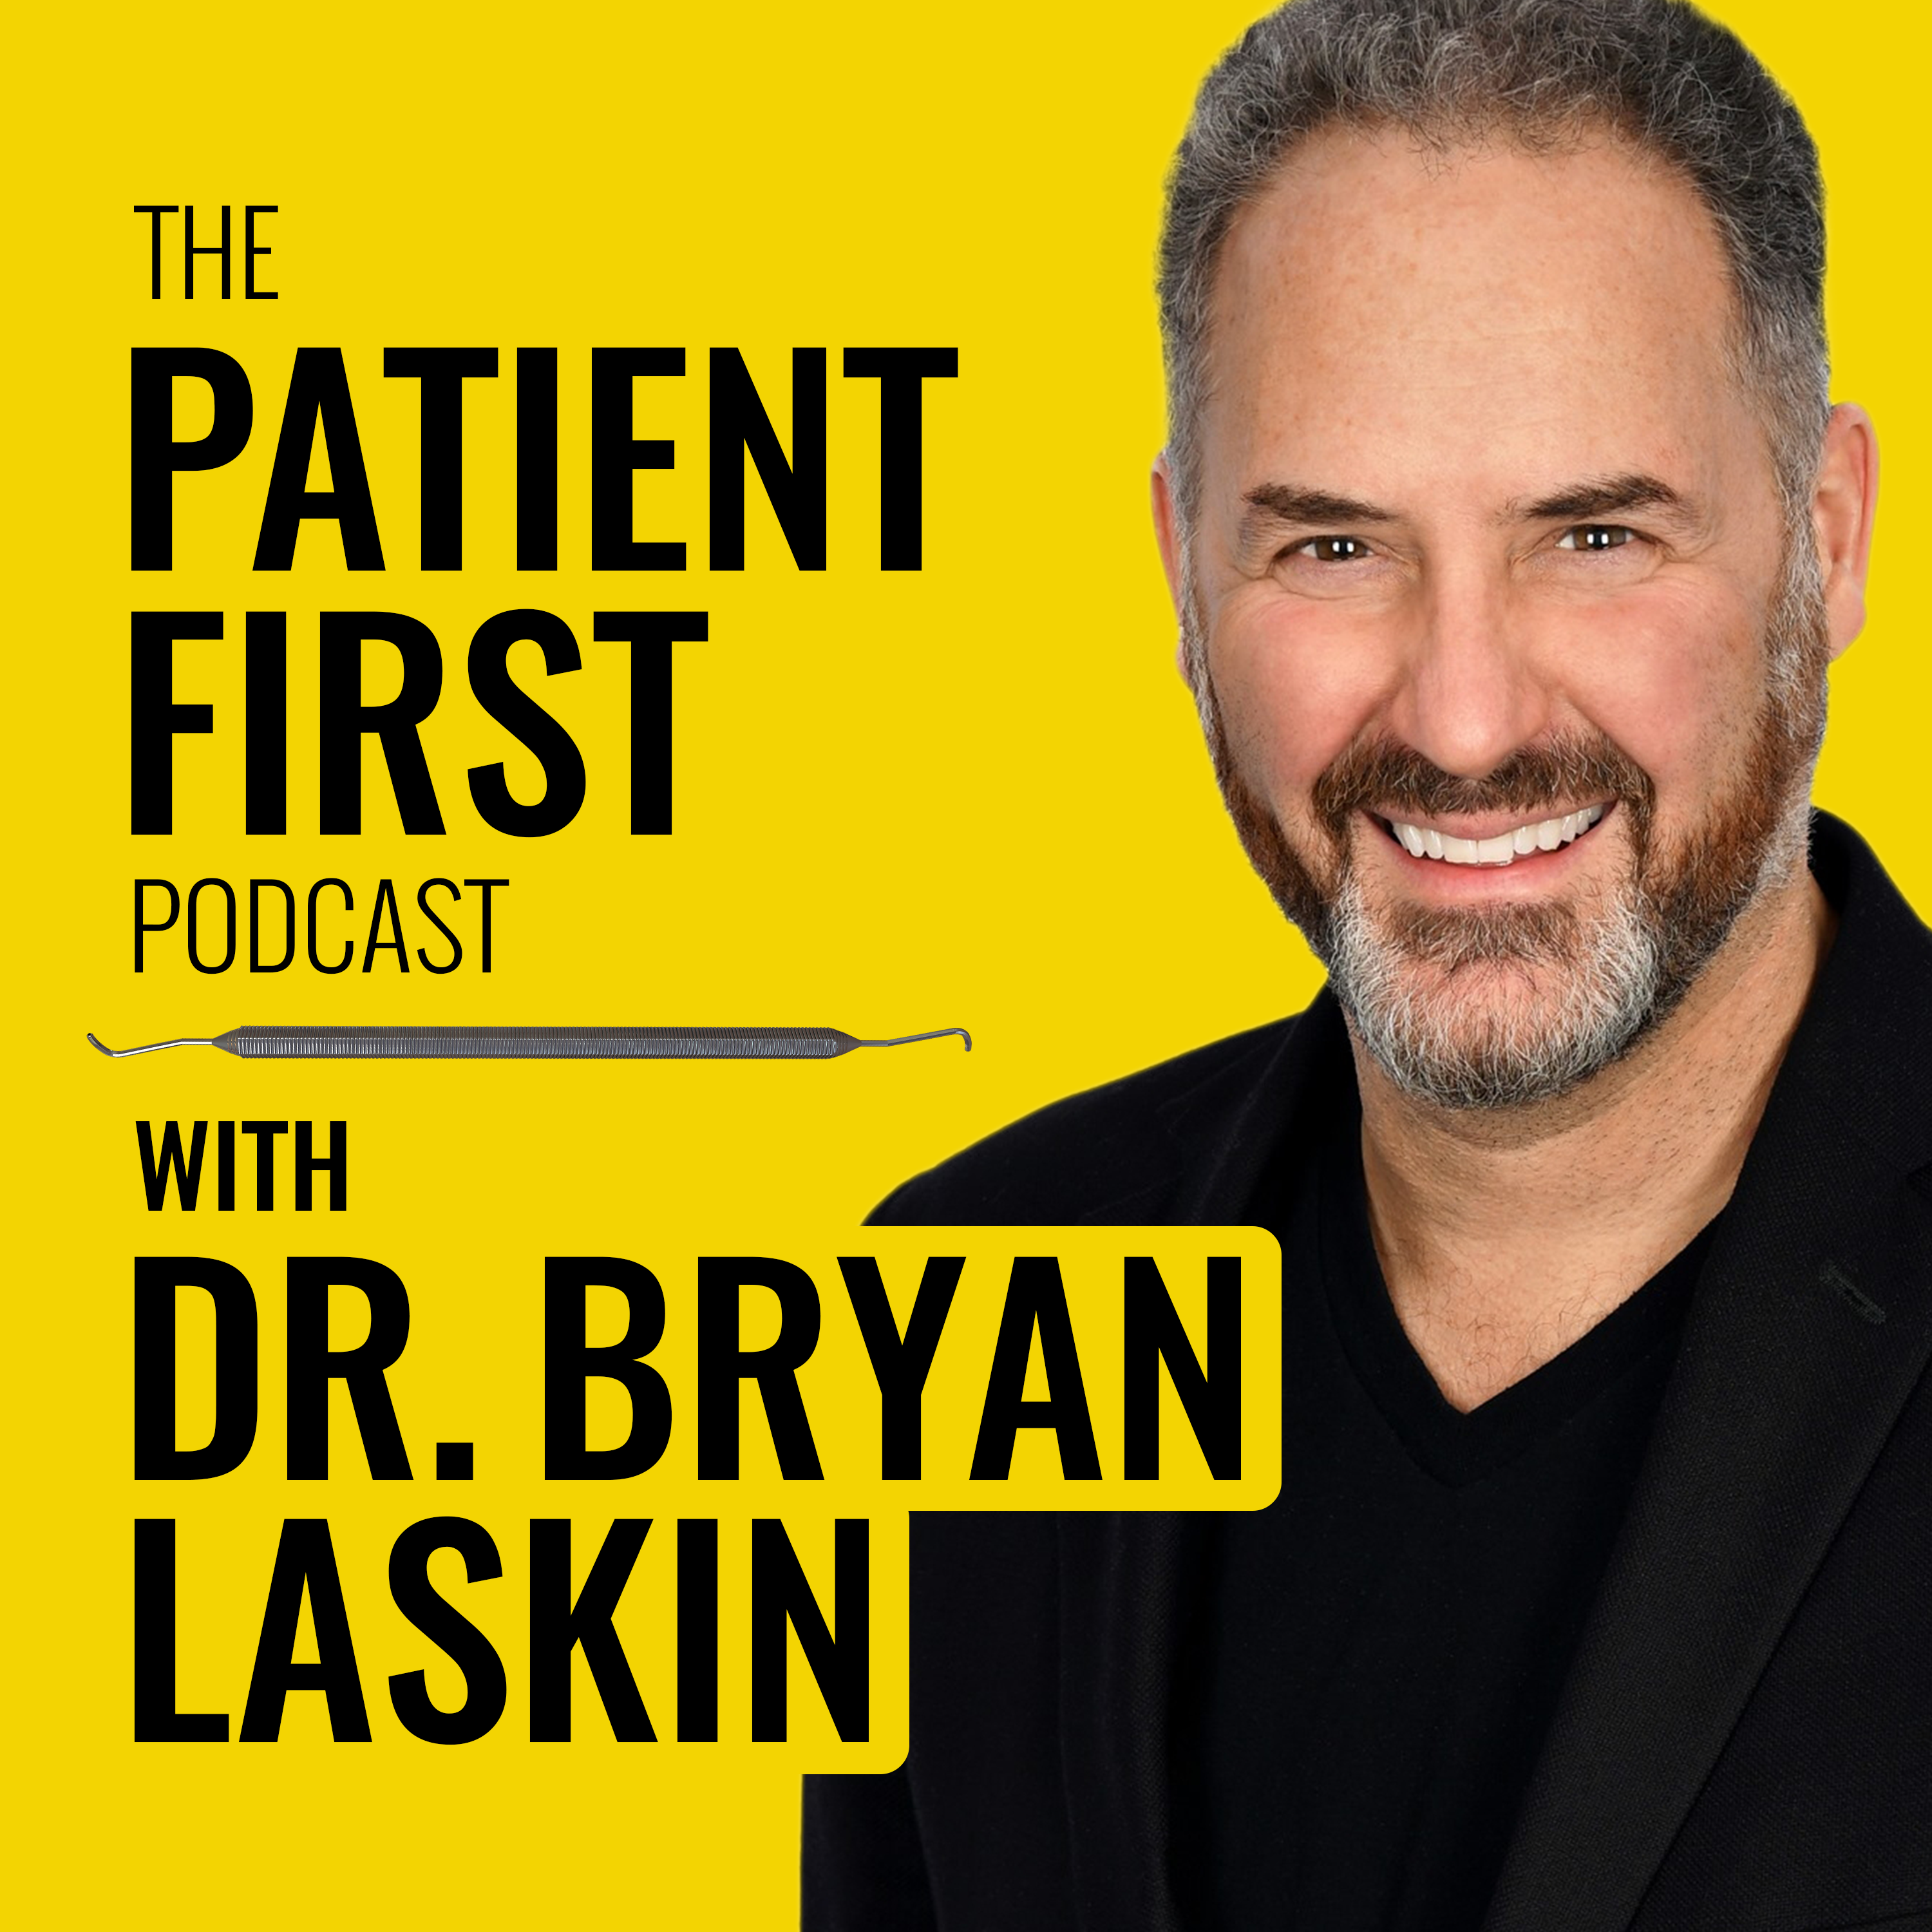 The Patient First Podcast with Dr. Bryan Laskin show art